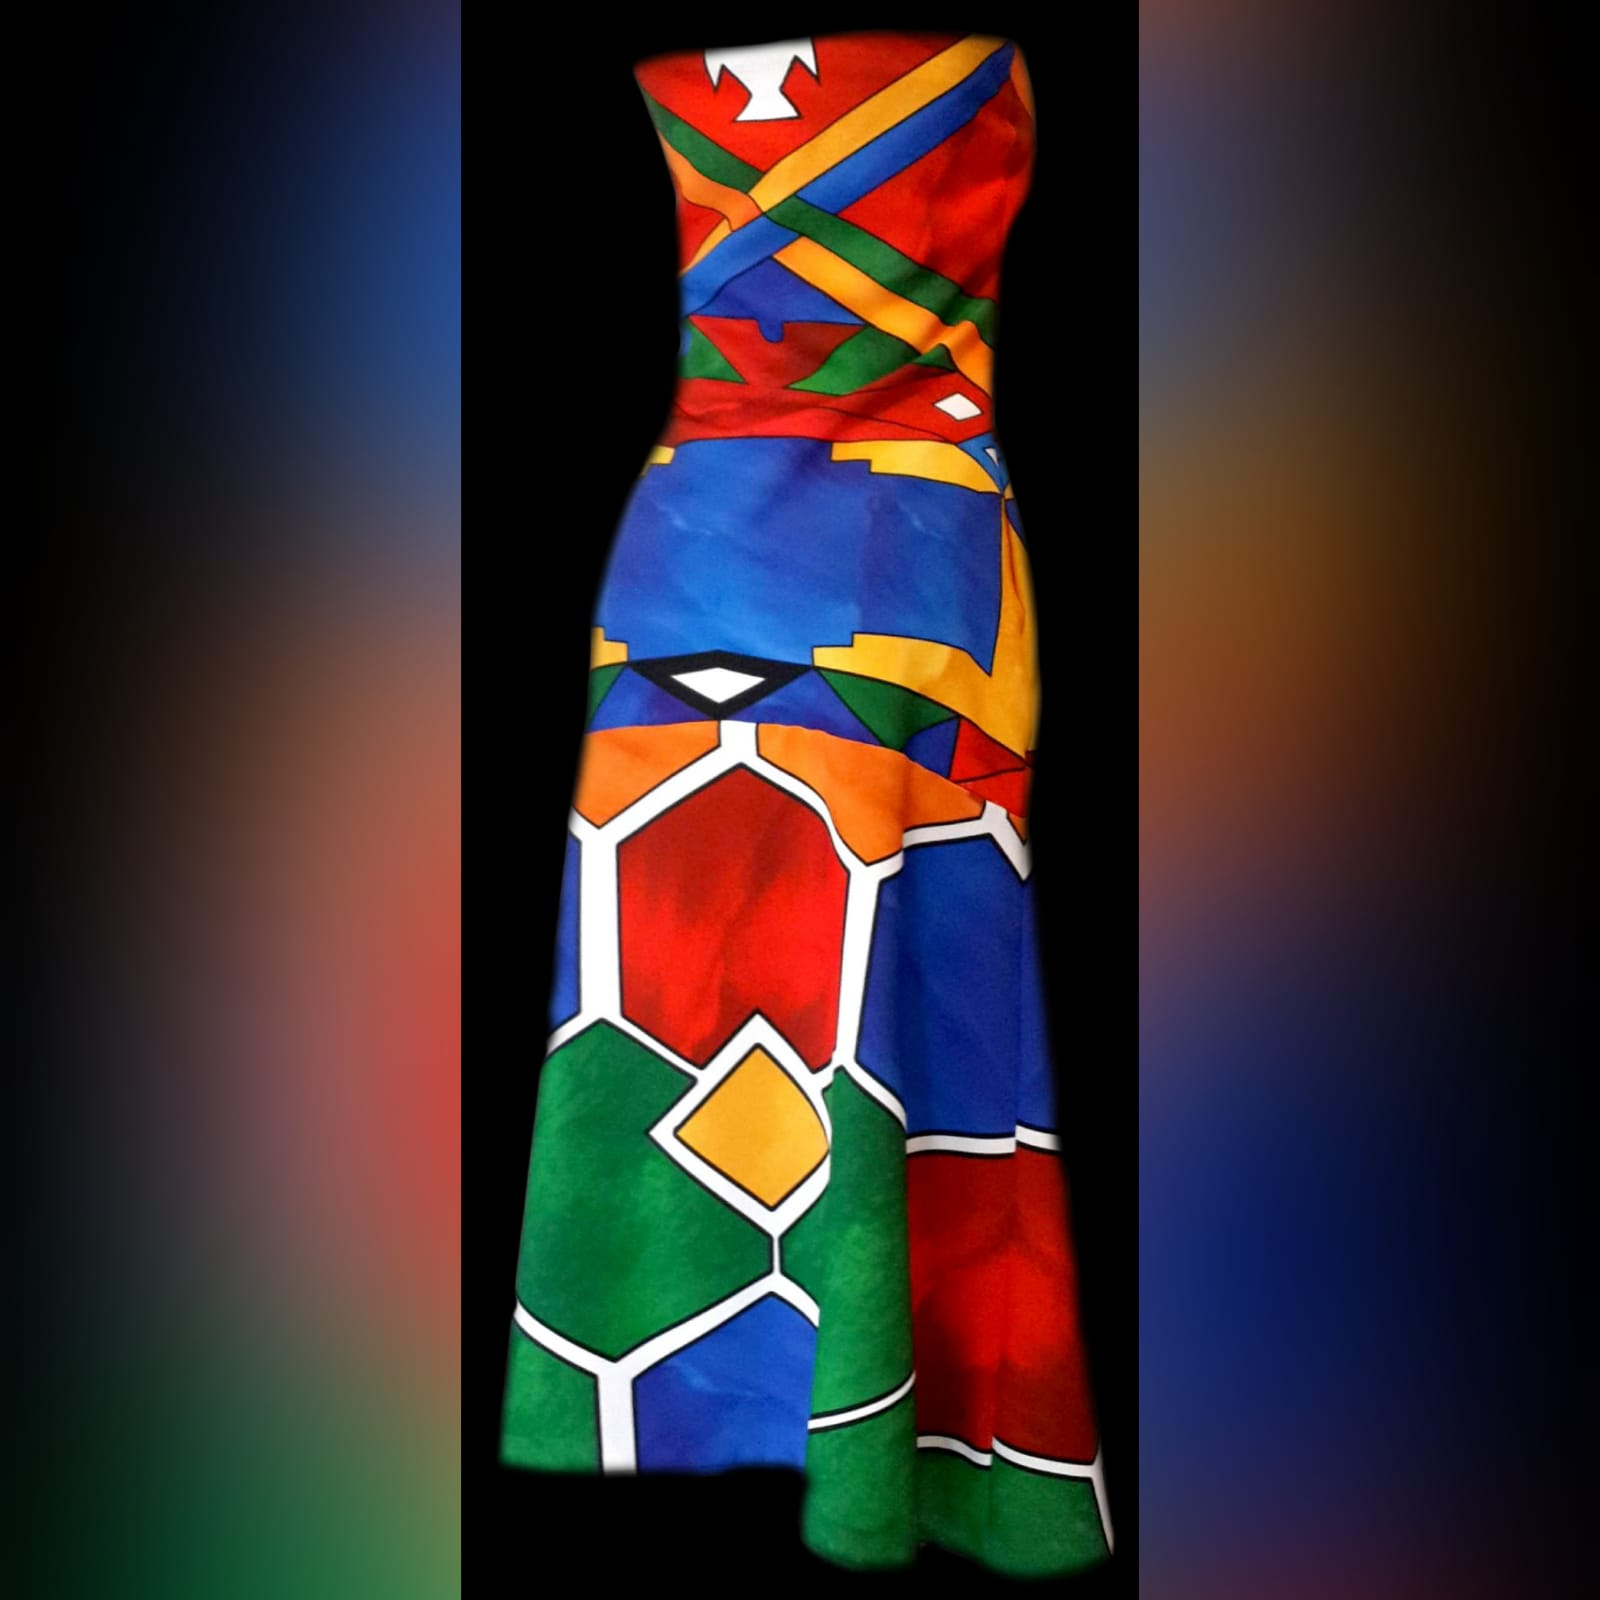 Ndebele traditional wedding dress 4 ndebele traditional wedding dress. Boob tube traditional wedding dress and fitted till the hips and flowy.